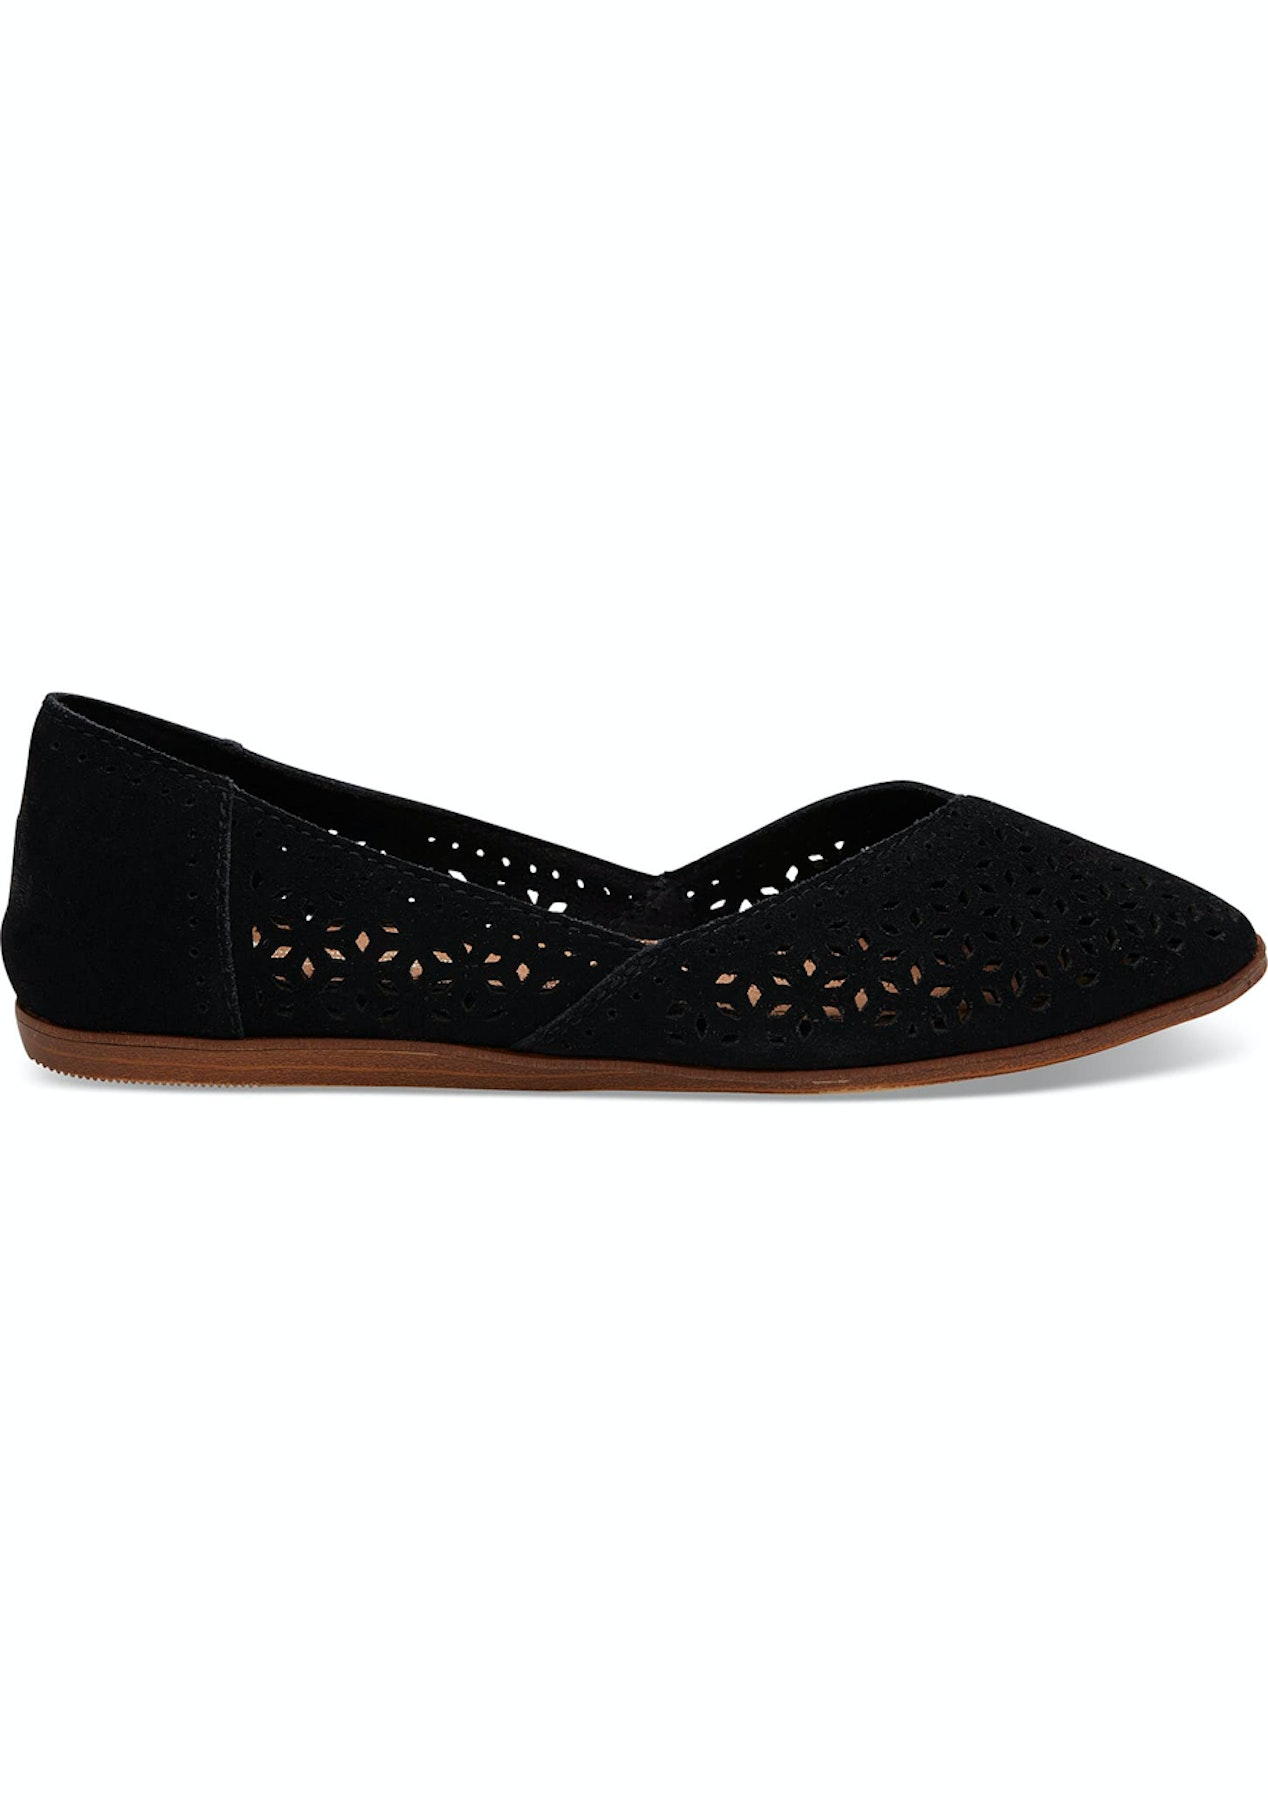 42926ab18bc Toms - Womens Classic Jutti Flat - Black Perforated Suede - Toms - Onceit